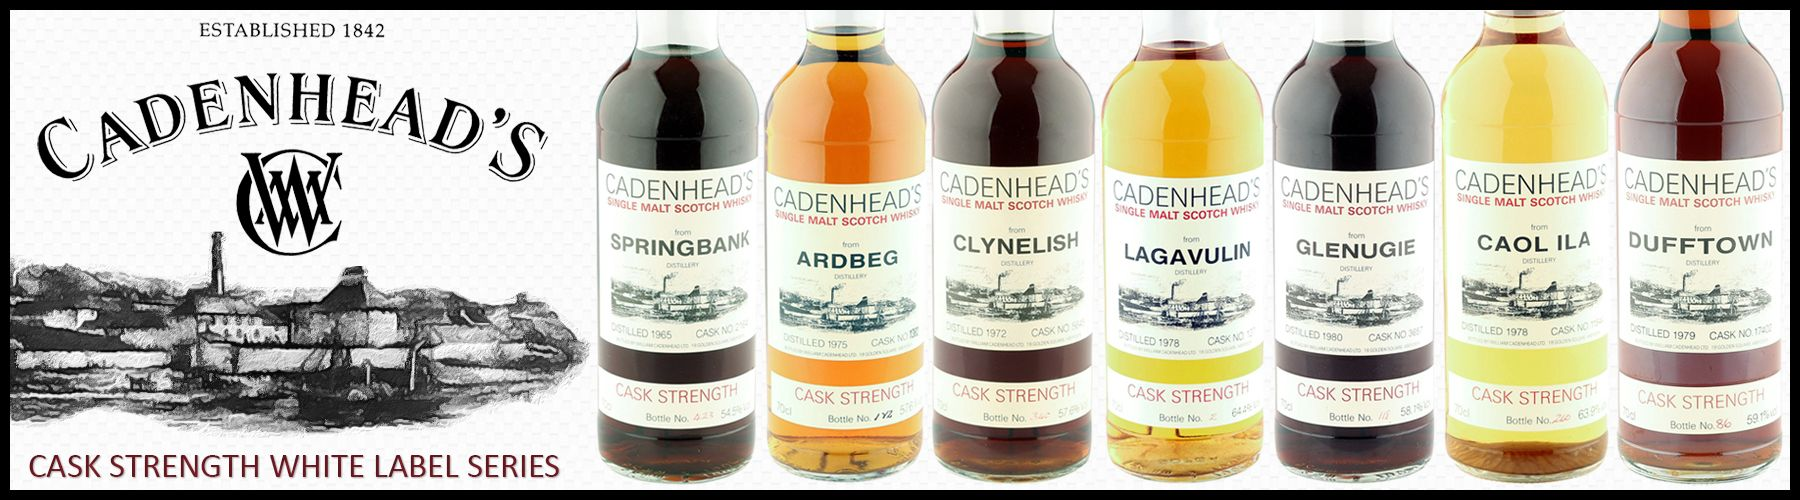 Cadenhead Cask Strength